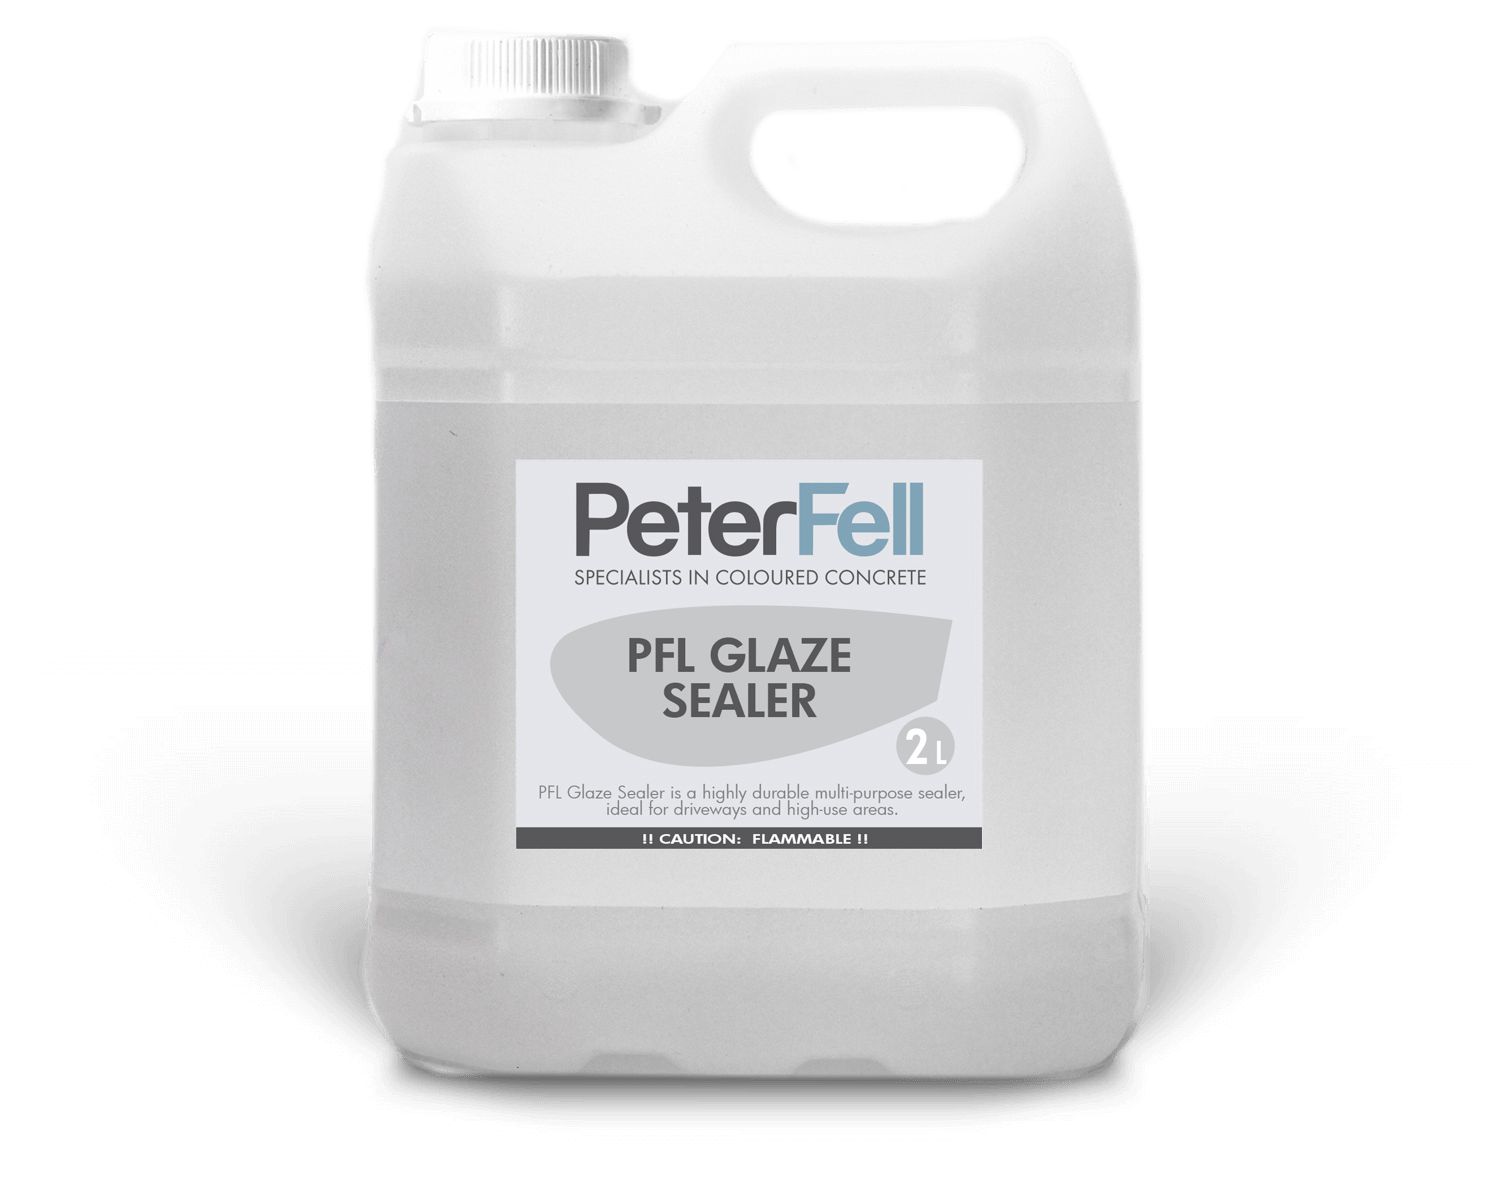 Peter Fell Glaze concrete sealer 2 litre bottle